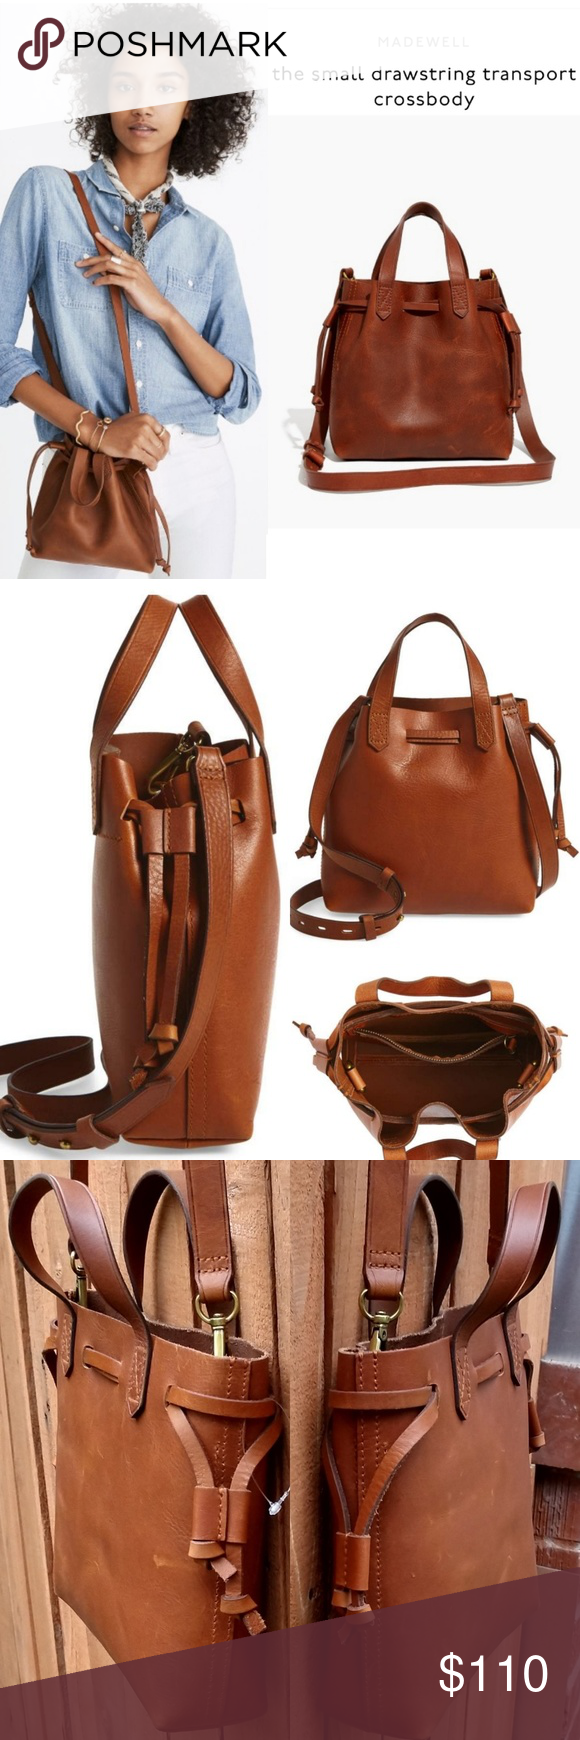 fb6b6faab MADEWELL Small Drawstring Transport Crossbody Bag 2 pieces of fine leather  are used for the body